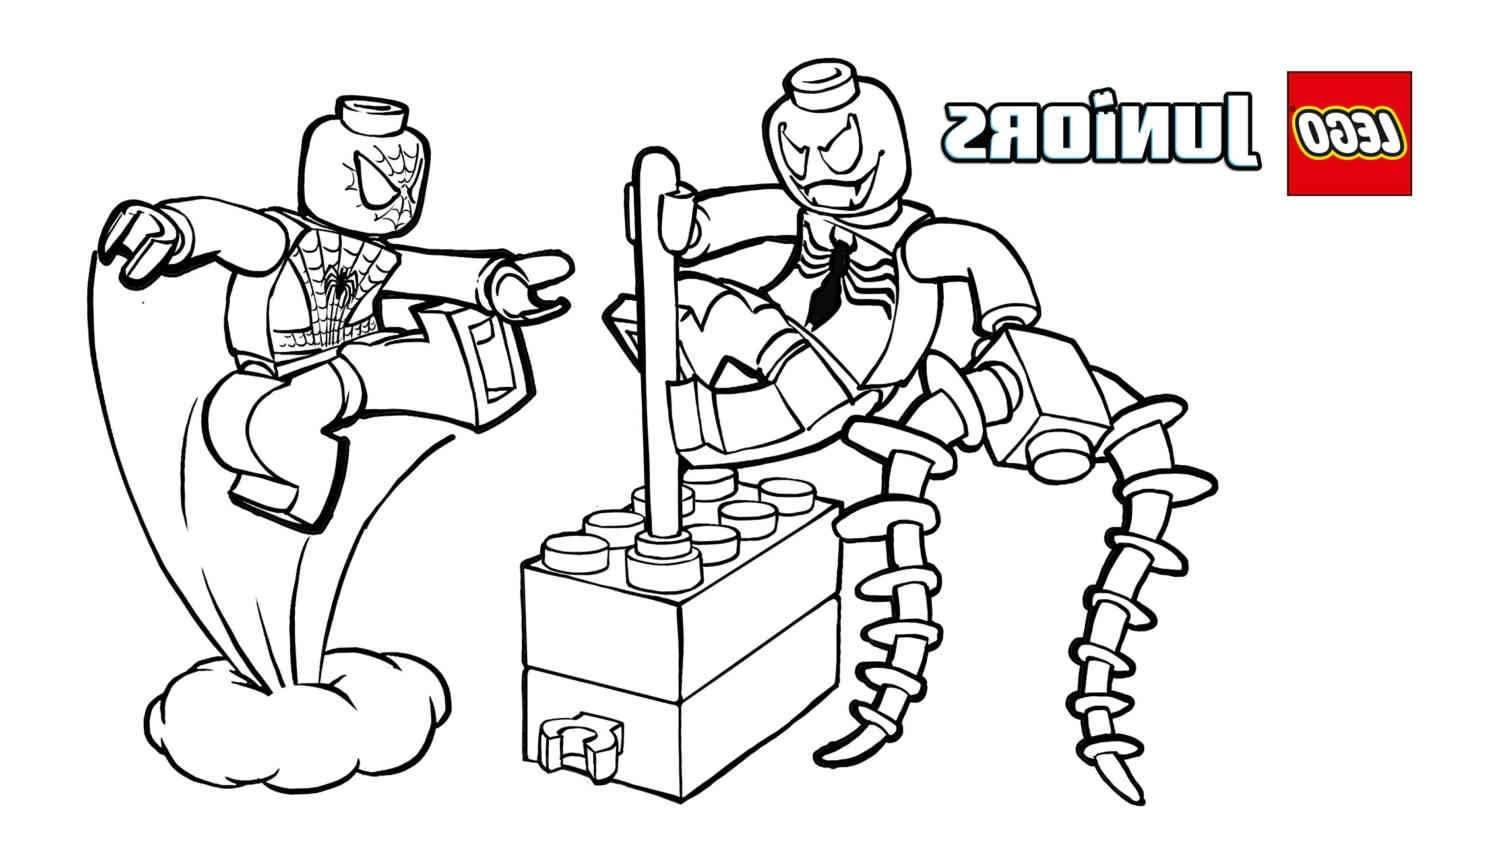 Lego Spiderman Coloring Pages Lego Spiderman Coloring Pages 9viq Lego Spiderman Coloring Pages New